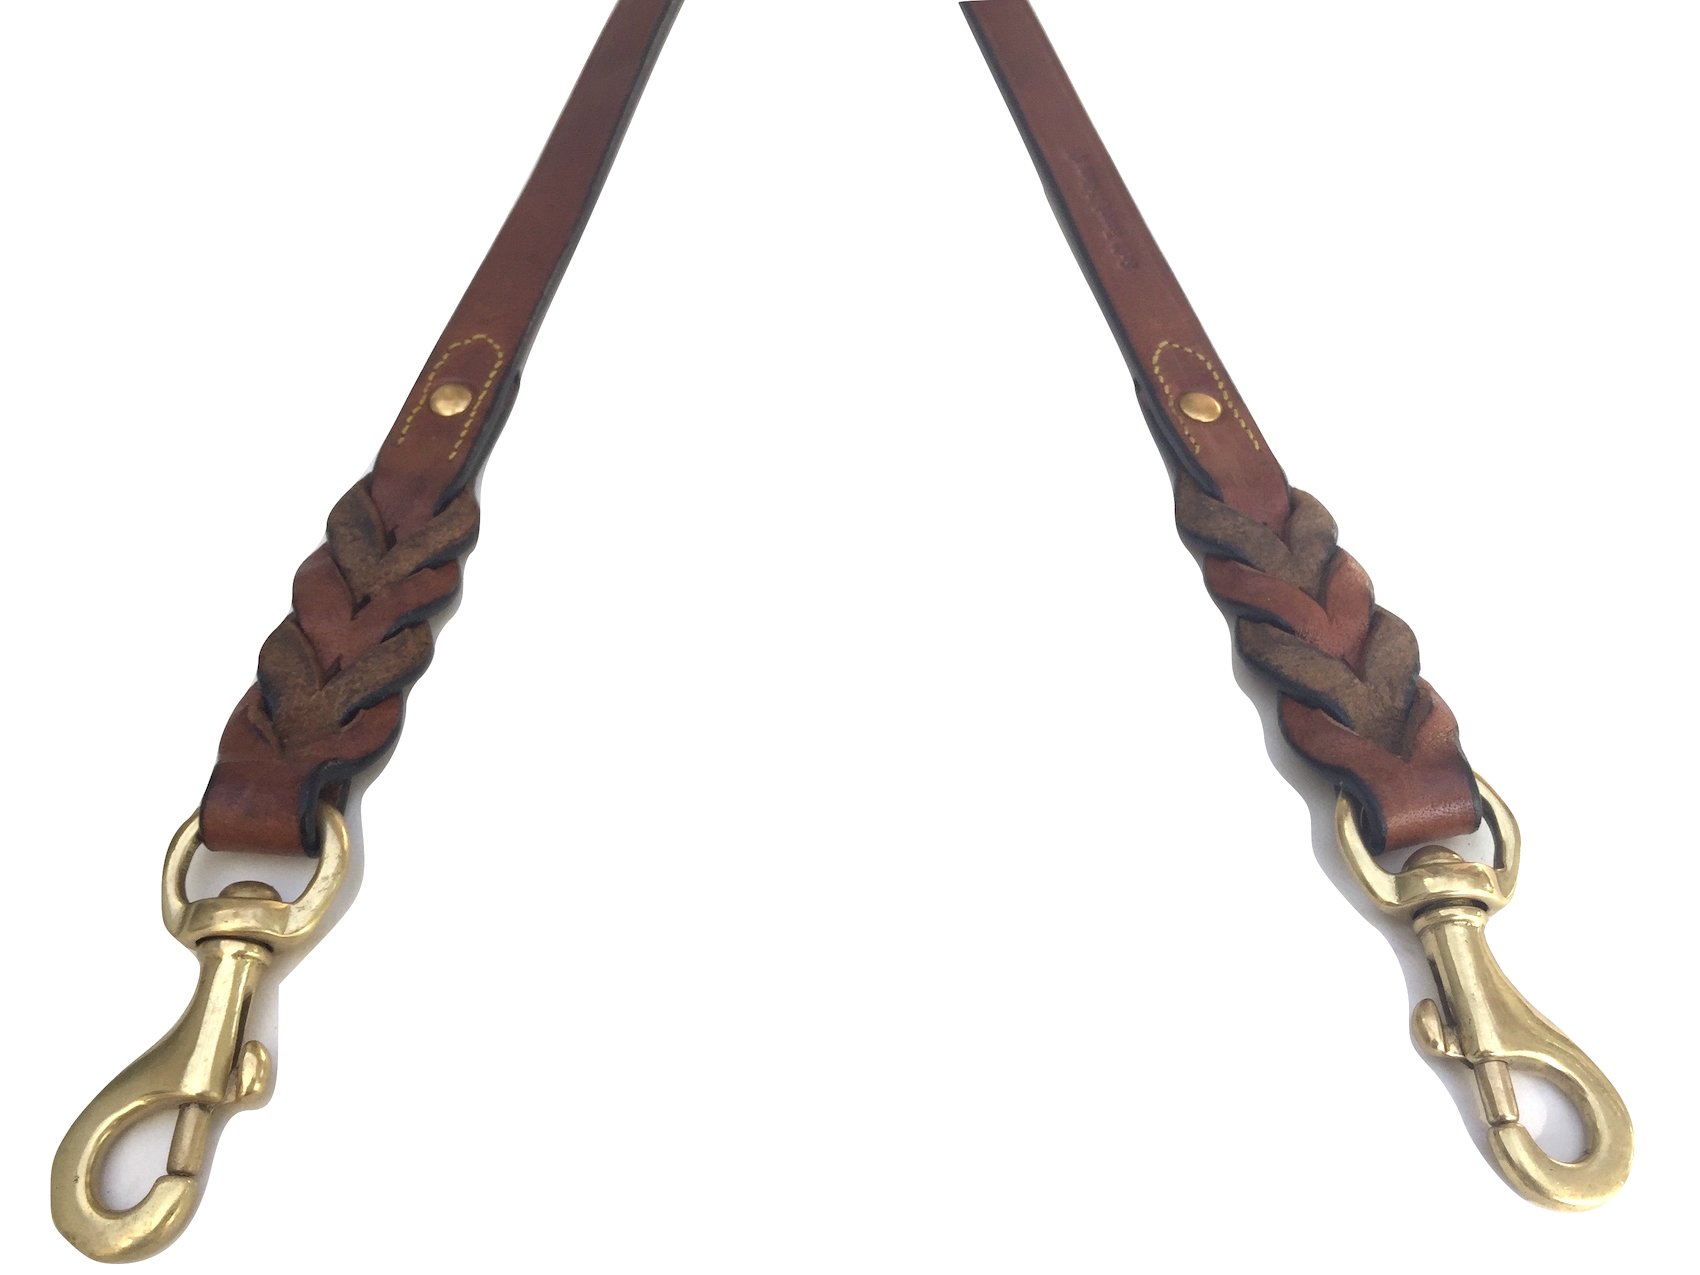 Soft Touch Collars - Leather Braided Coupler Dog Leash for Two Dogs, Brown - Walk 2 Dogs with only 1 Lead - 18 Inches Long x 3/4 inch Wide by Soft Touch Collars